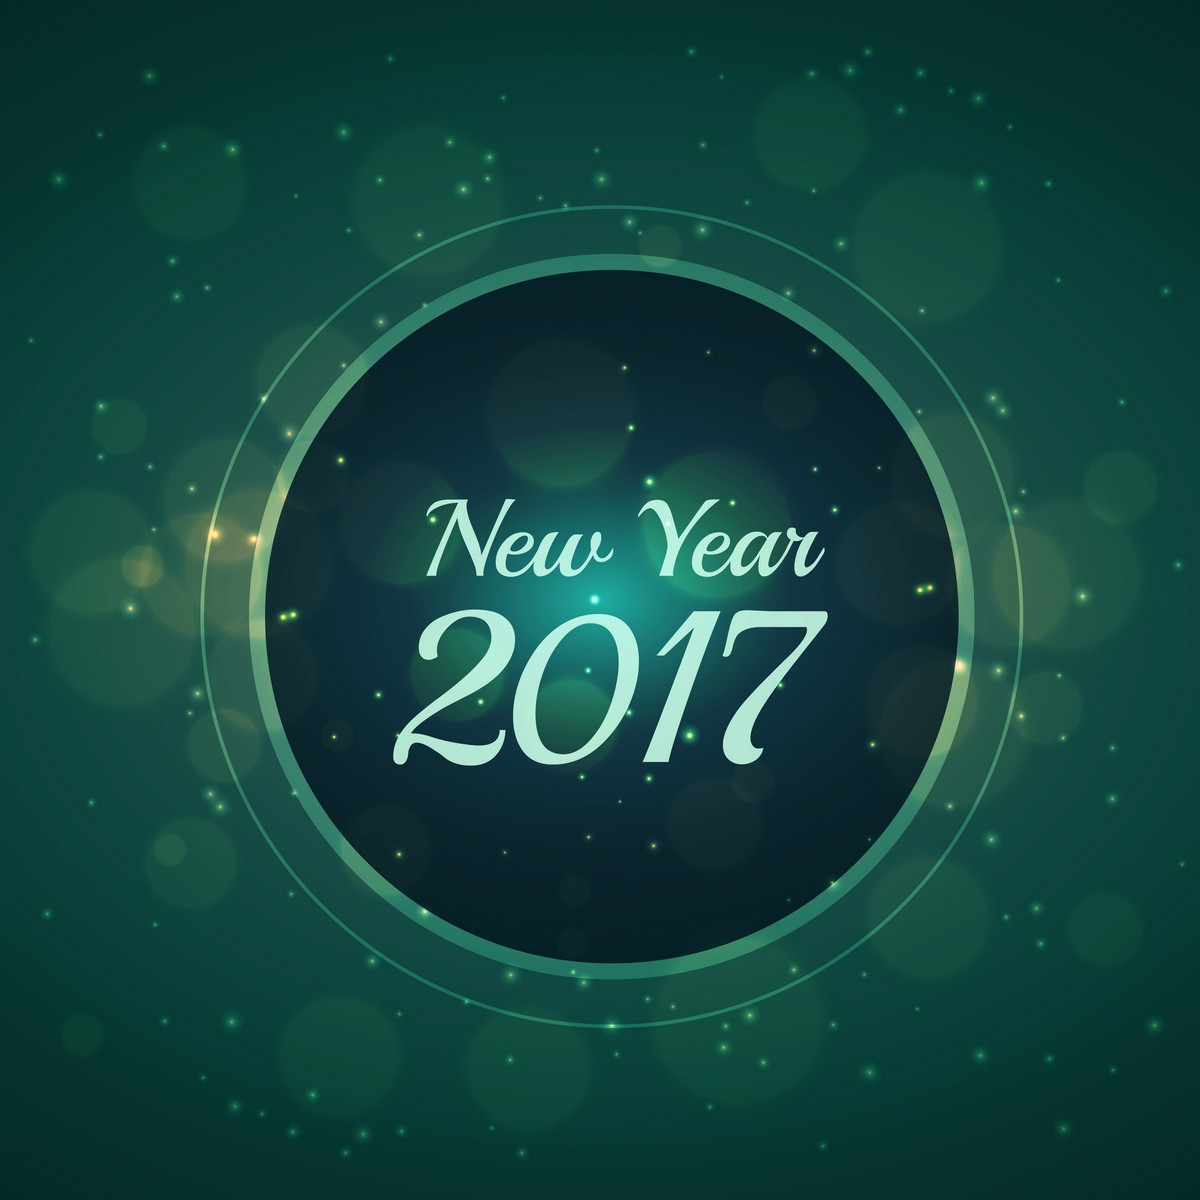 Happy New Year 2017 HD Pics For Whatsapp